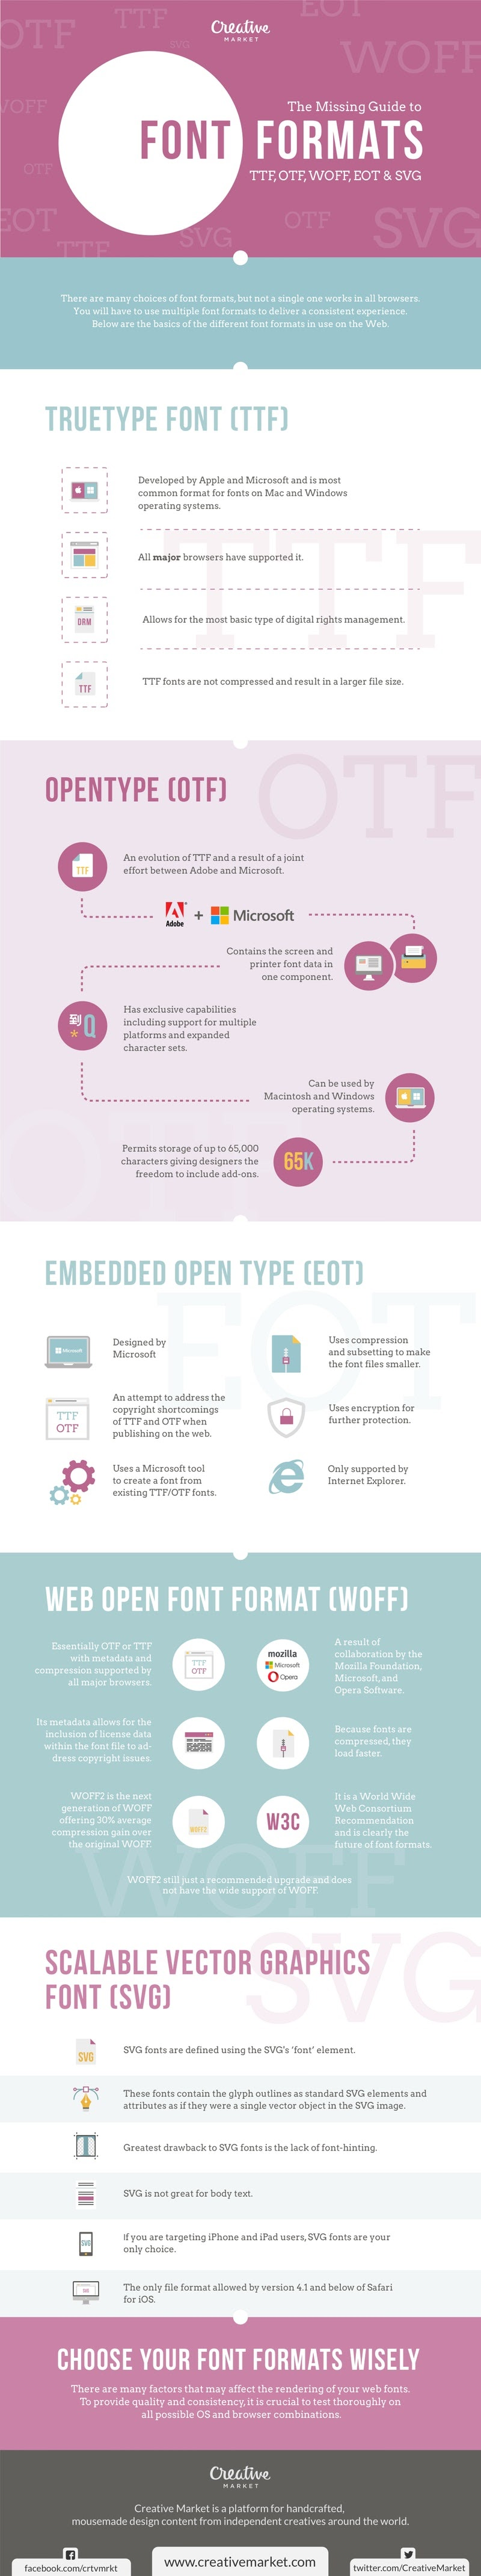 The Missing Guide to Font Formats: TTF, OTF, WOFF, EOT & SVG - #infographic